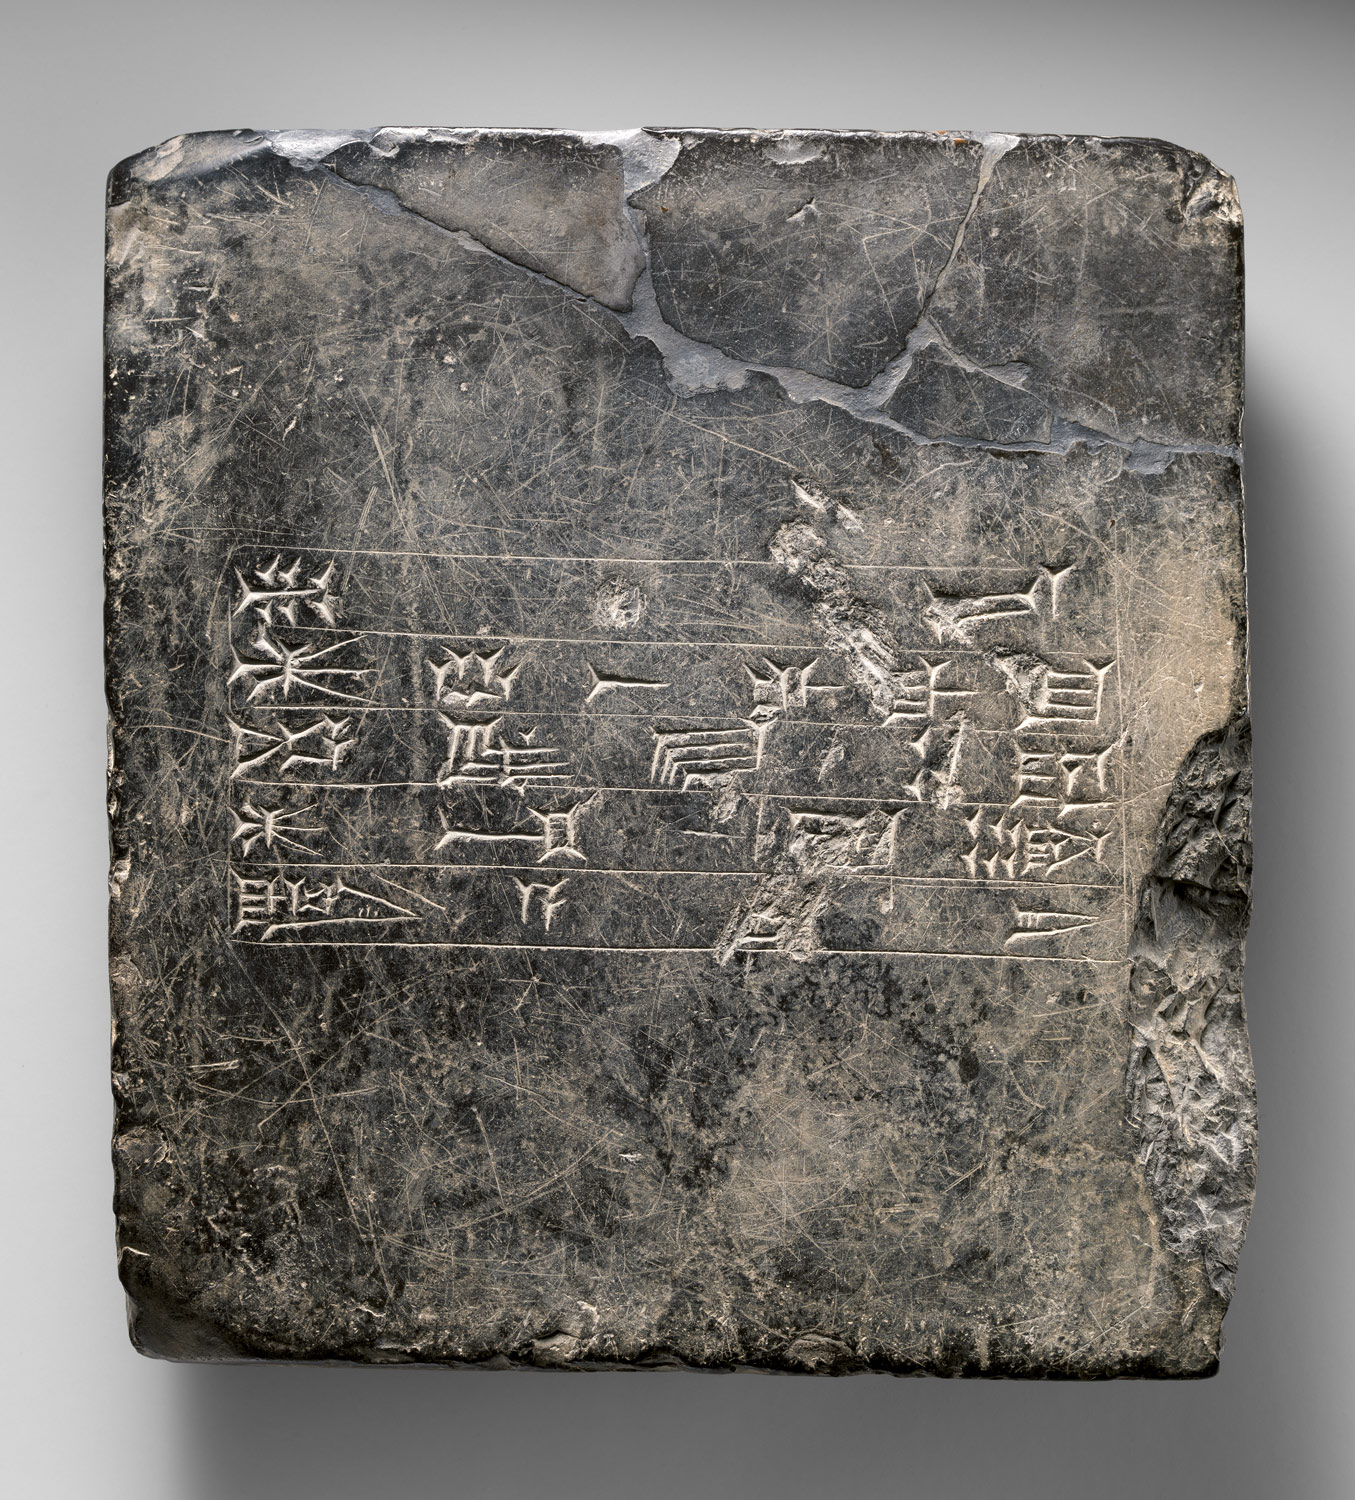 Cuneiform tablet: Sumerian dedicatory(?) inscription from Ekur, the temple of the god Enlil